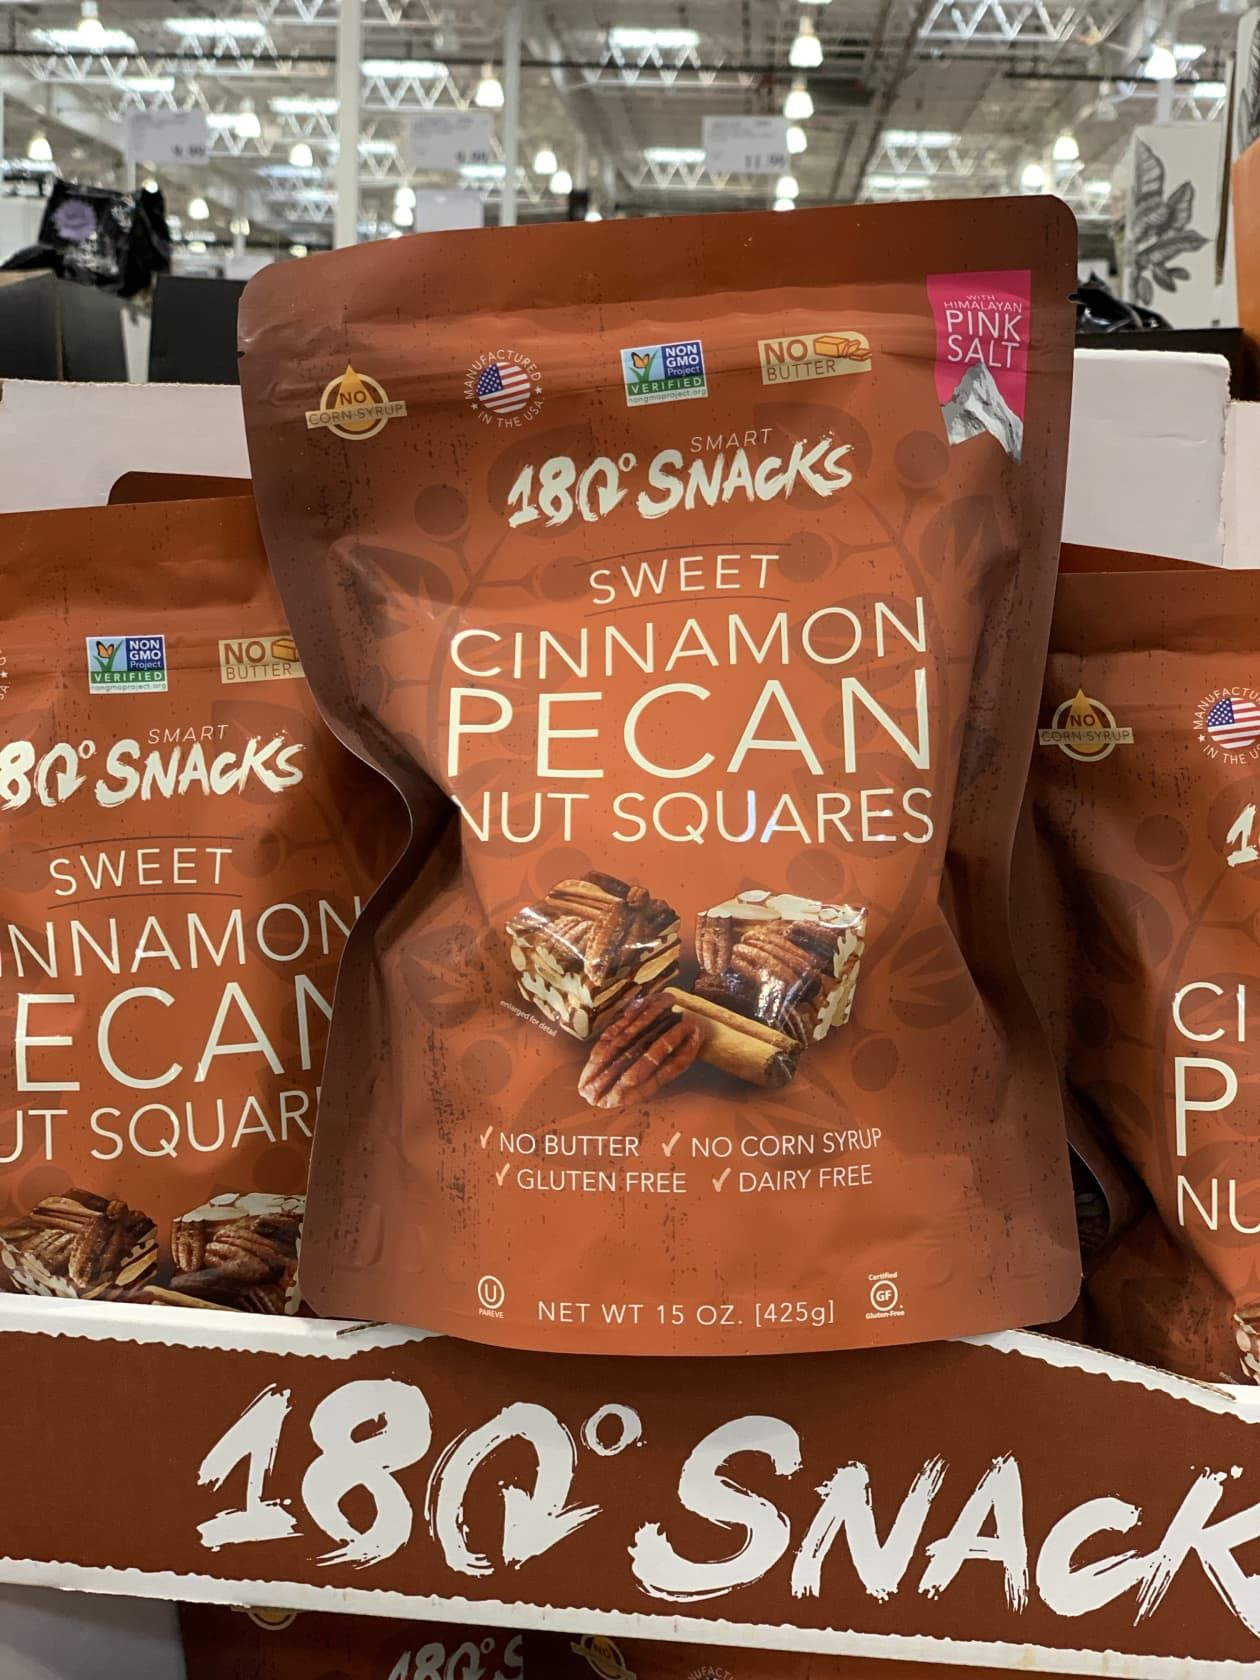 The Best New Groceries At Costco According To A Nutritionist In